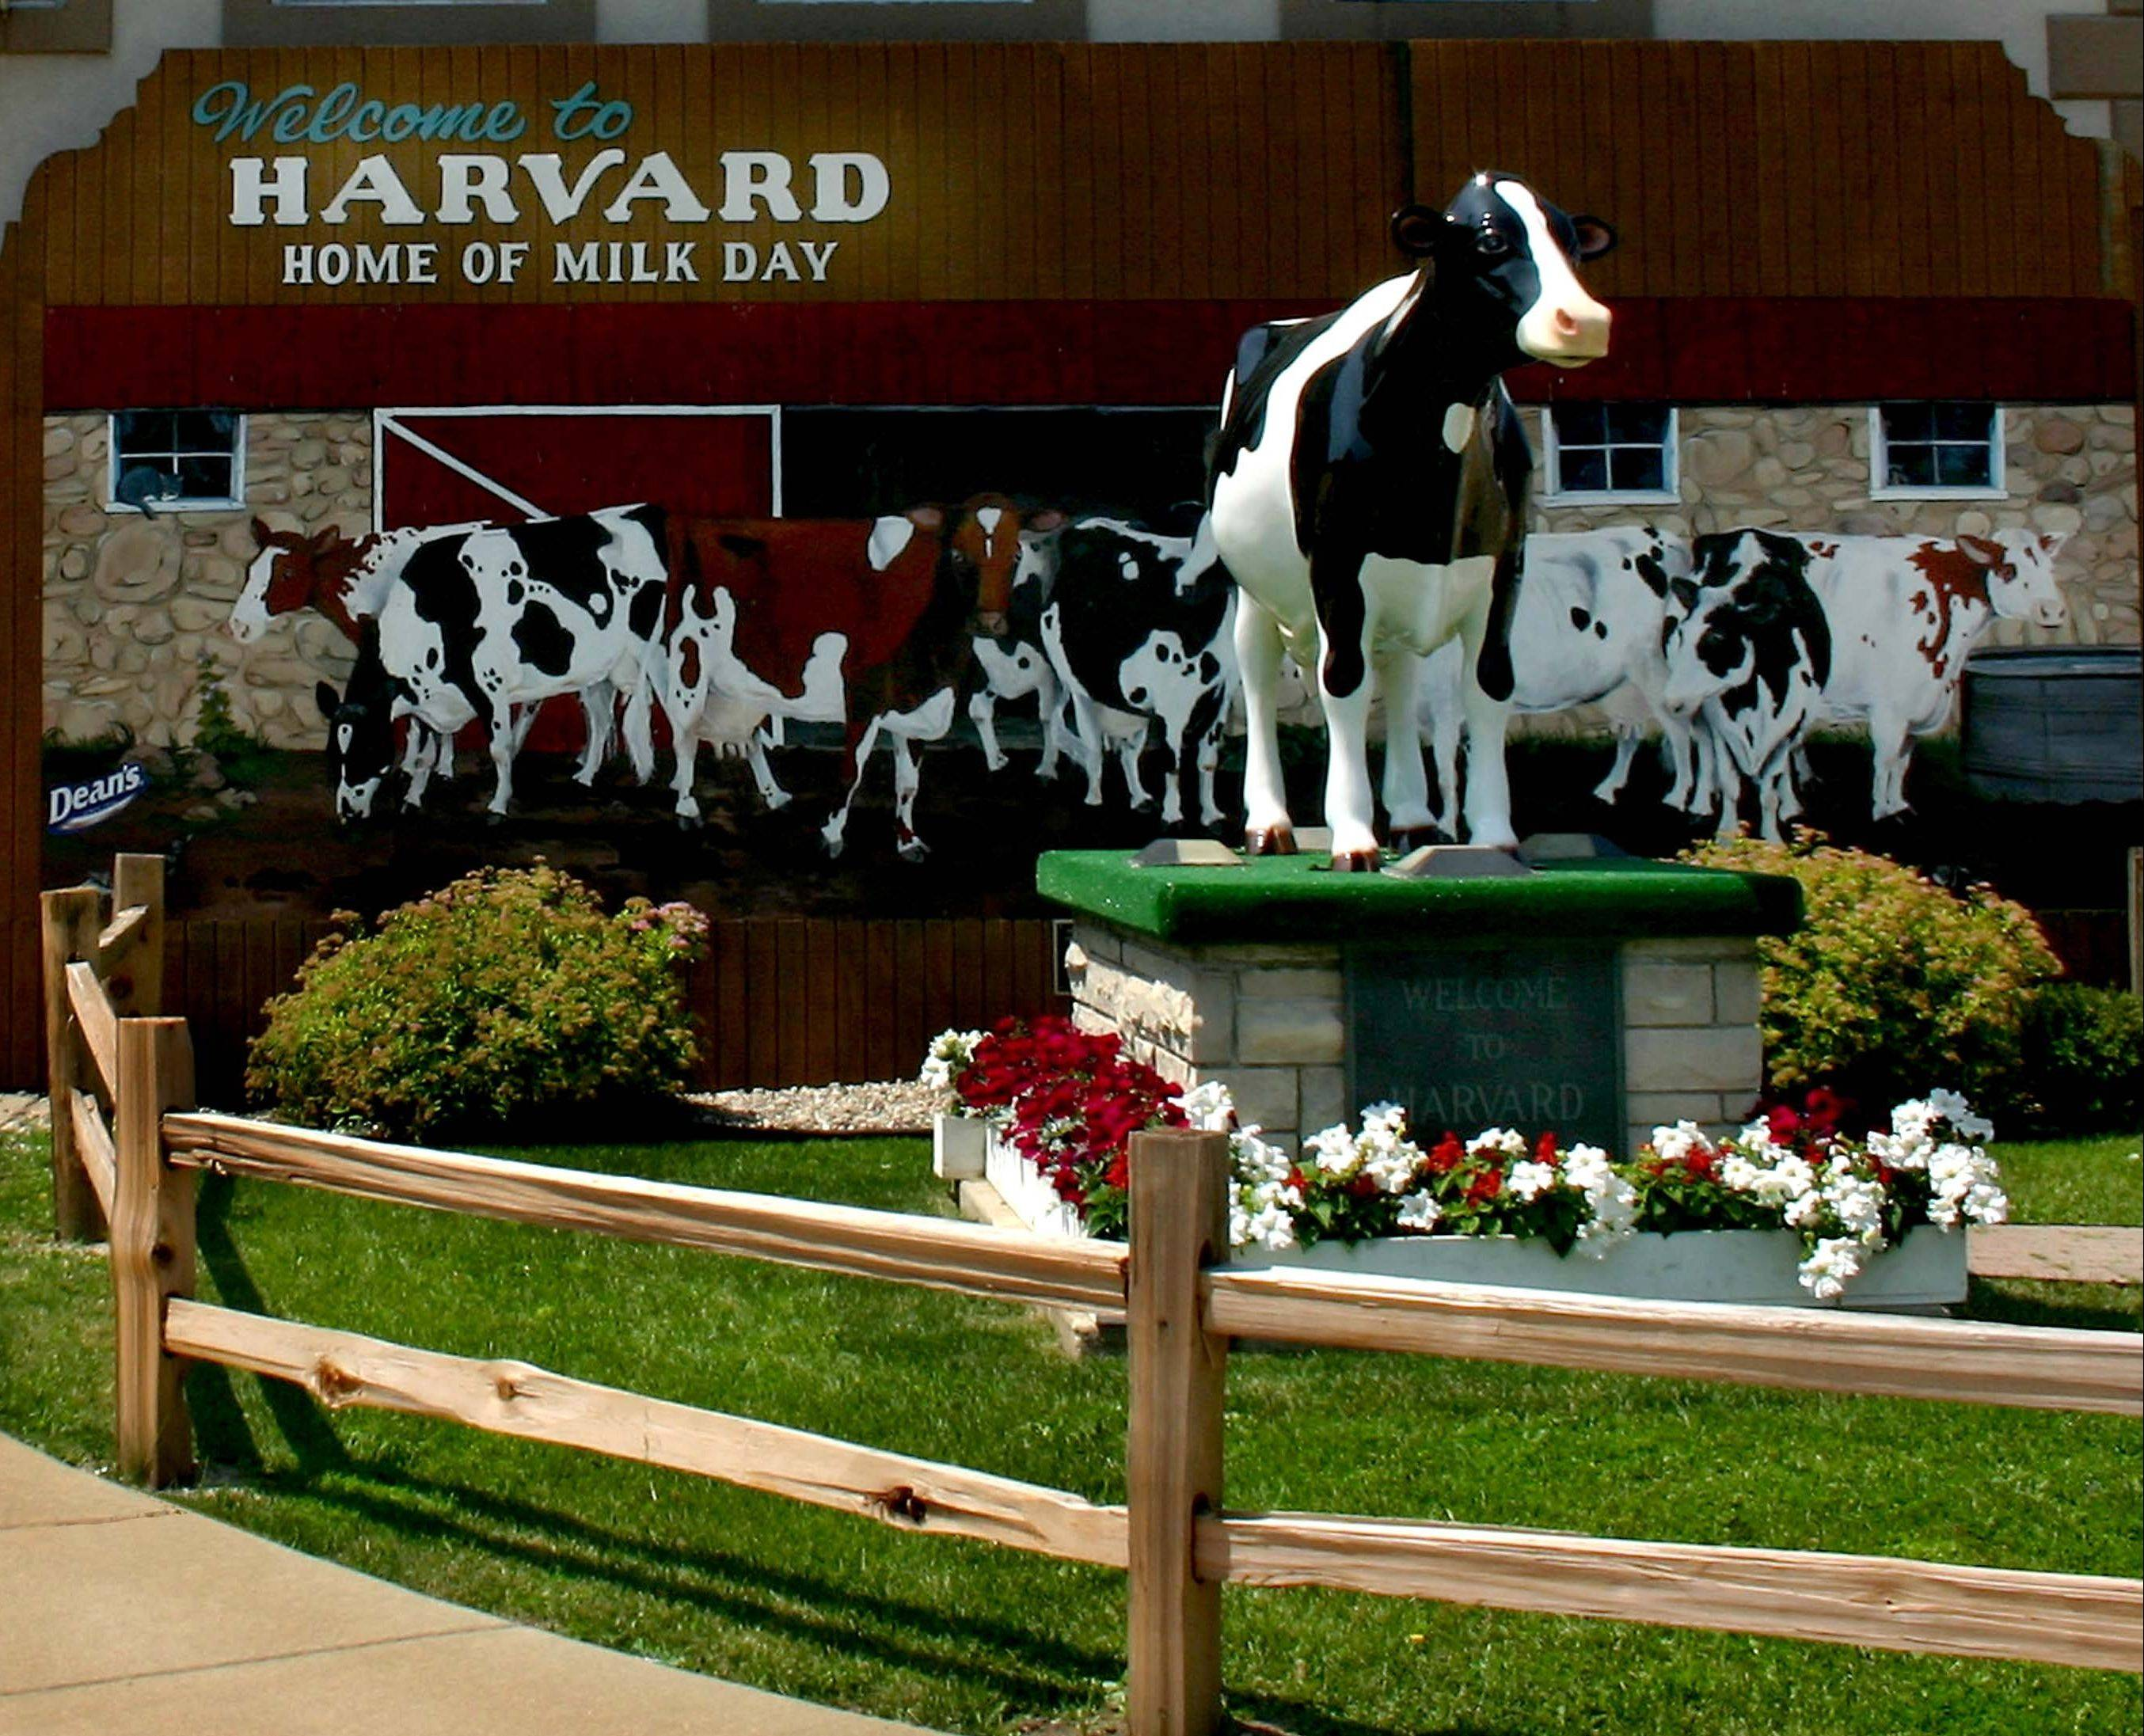 Harmilda, named for Harvard Milk Days, is the grand dame of Illinois' longest-running festival, June 1-3.